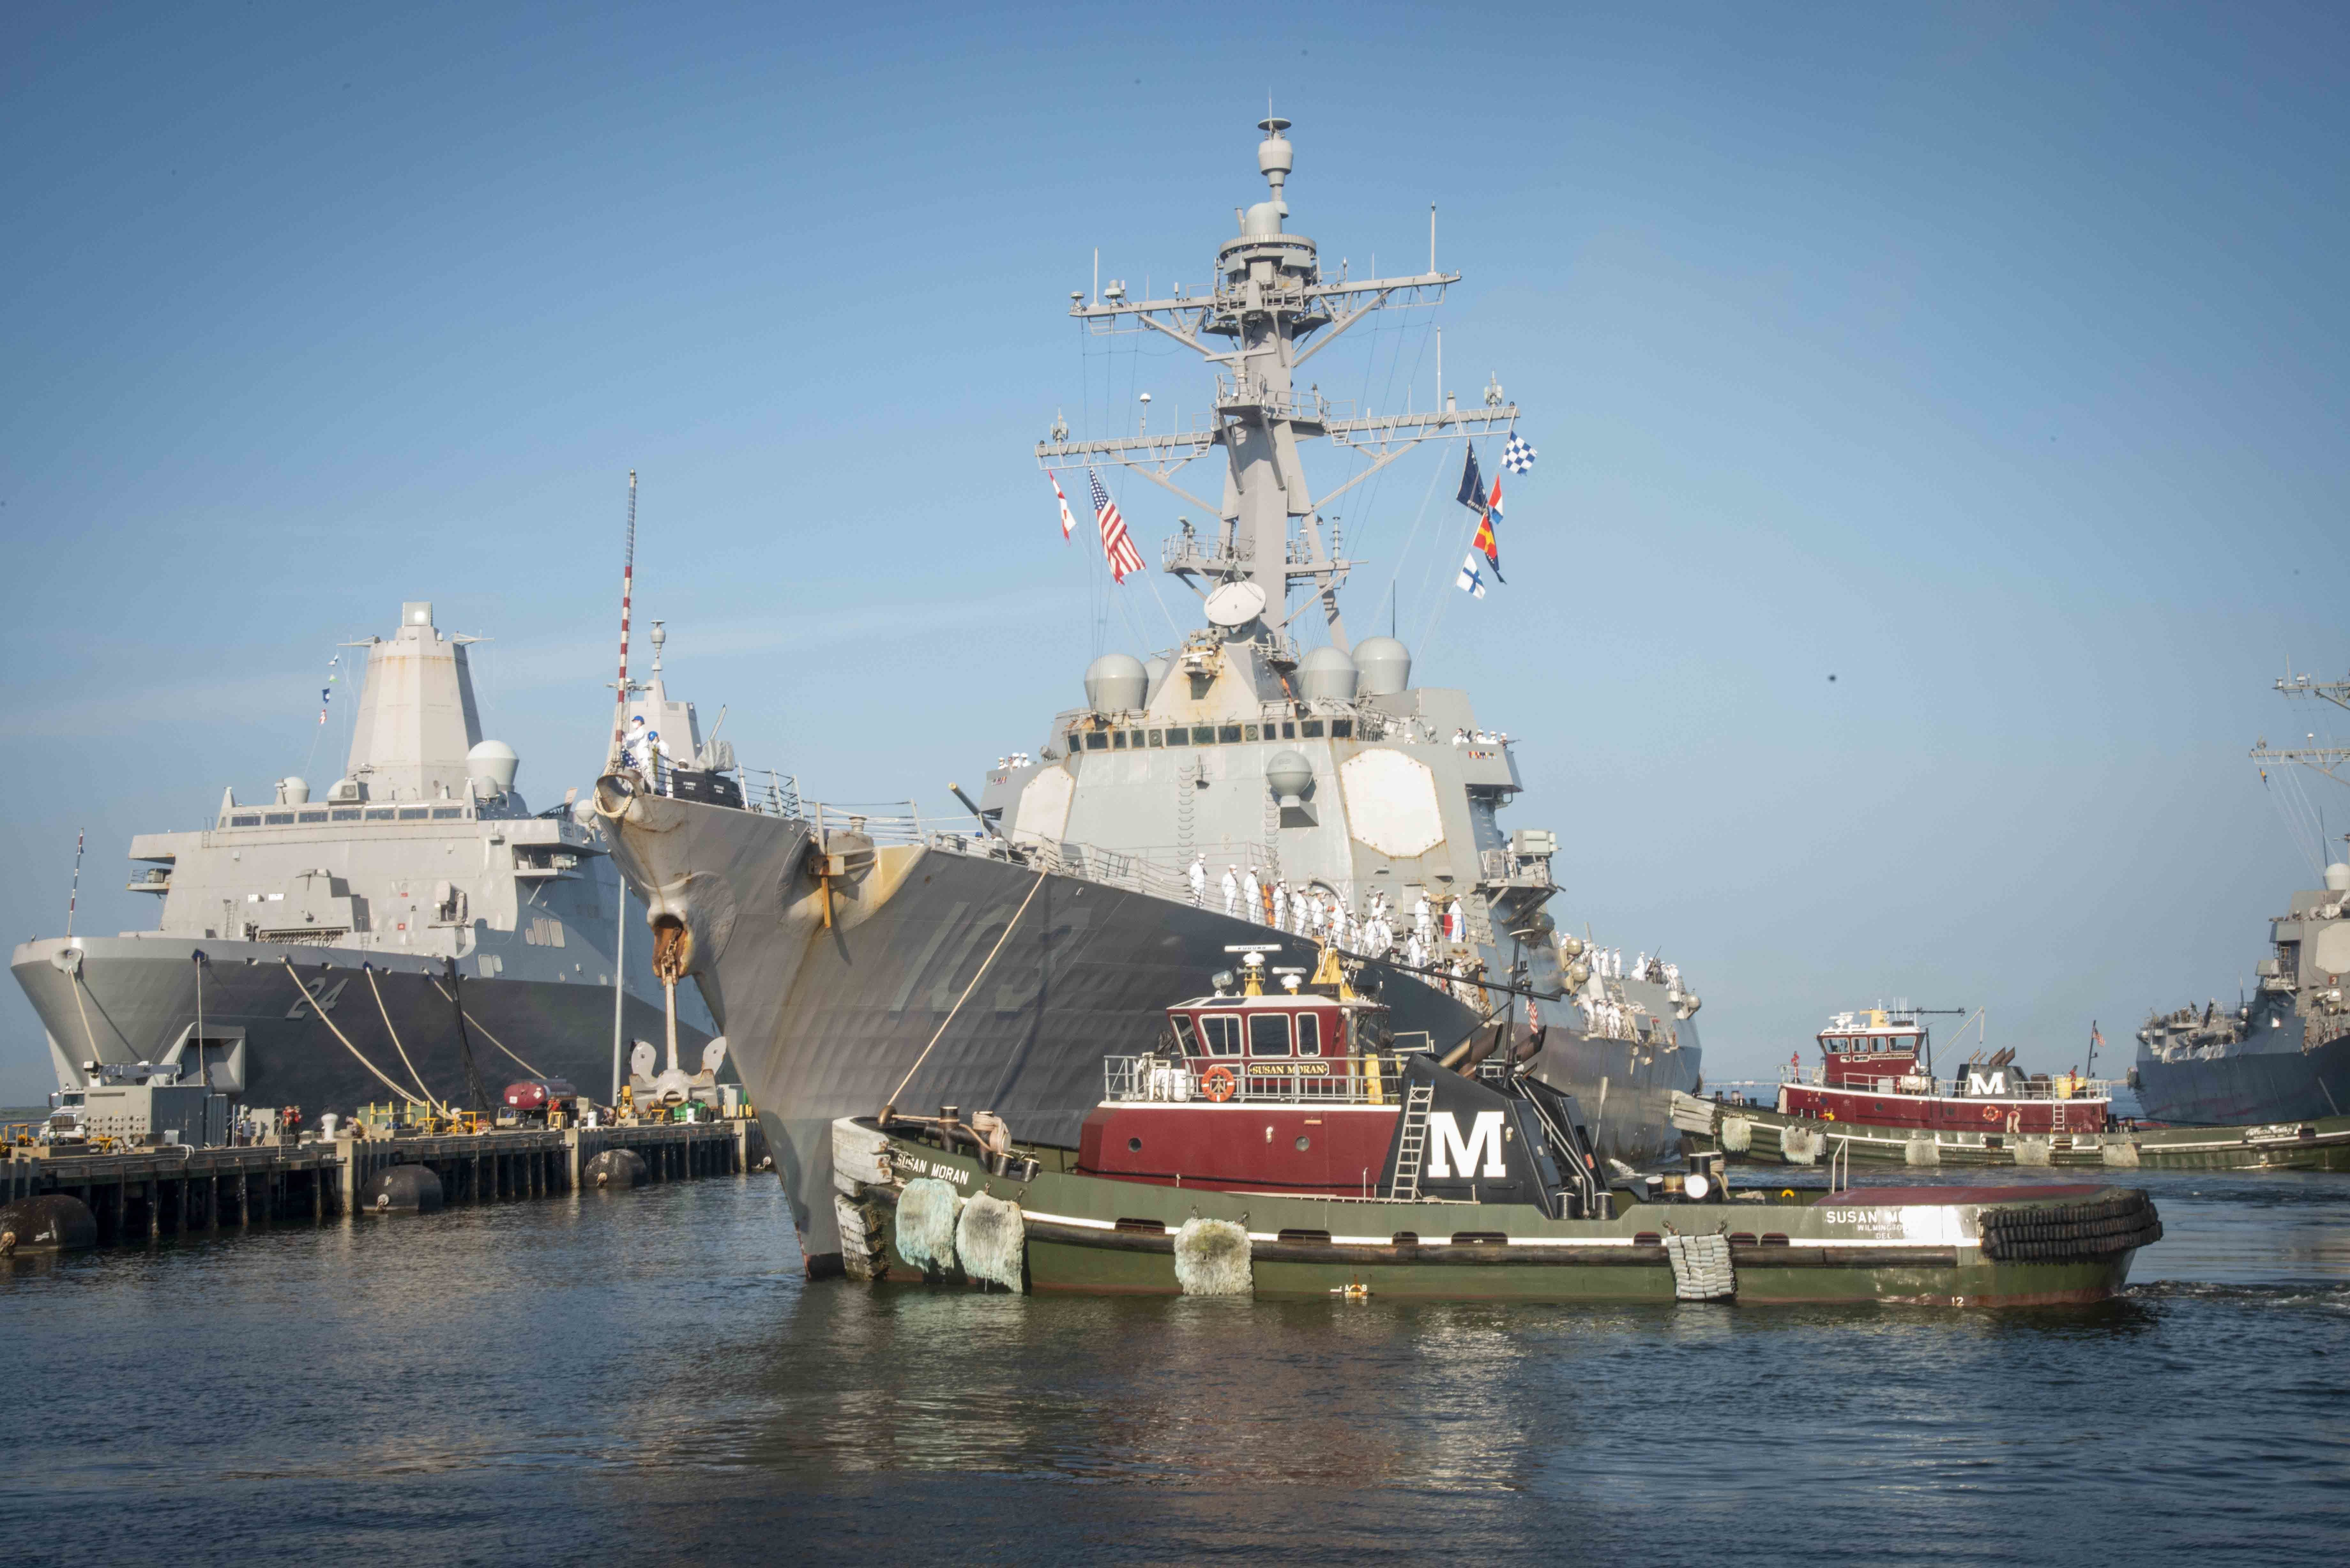 The Arleigh Burke Class Guided Missile Destroyer Uss Truxtun Ddg 103 Returns To Naval Station Norfolk Following A Seve In 2020 Naval Station Norfolk Us Navy Navy Day